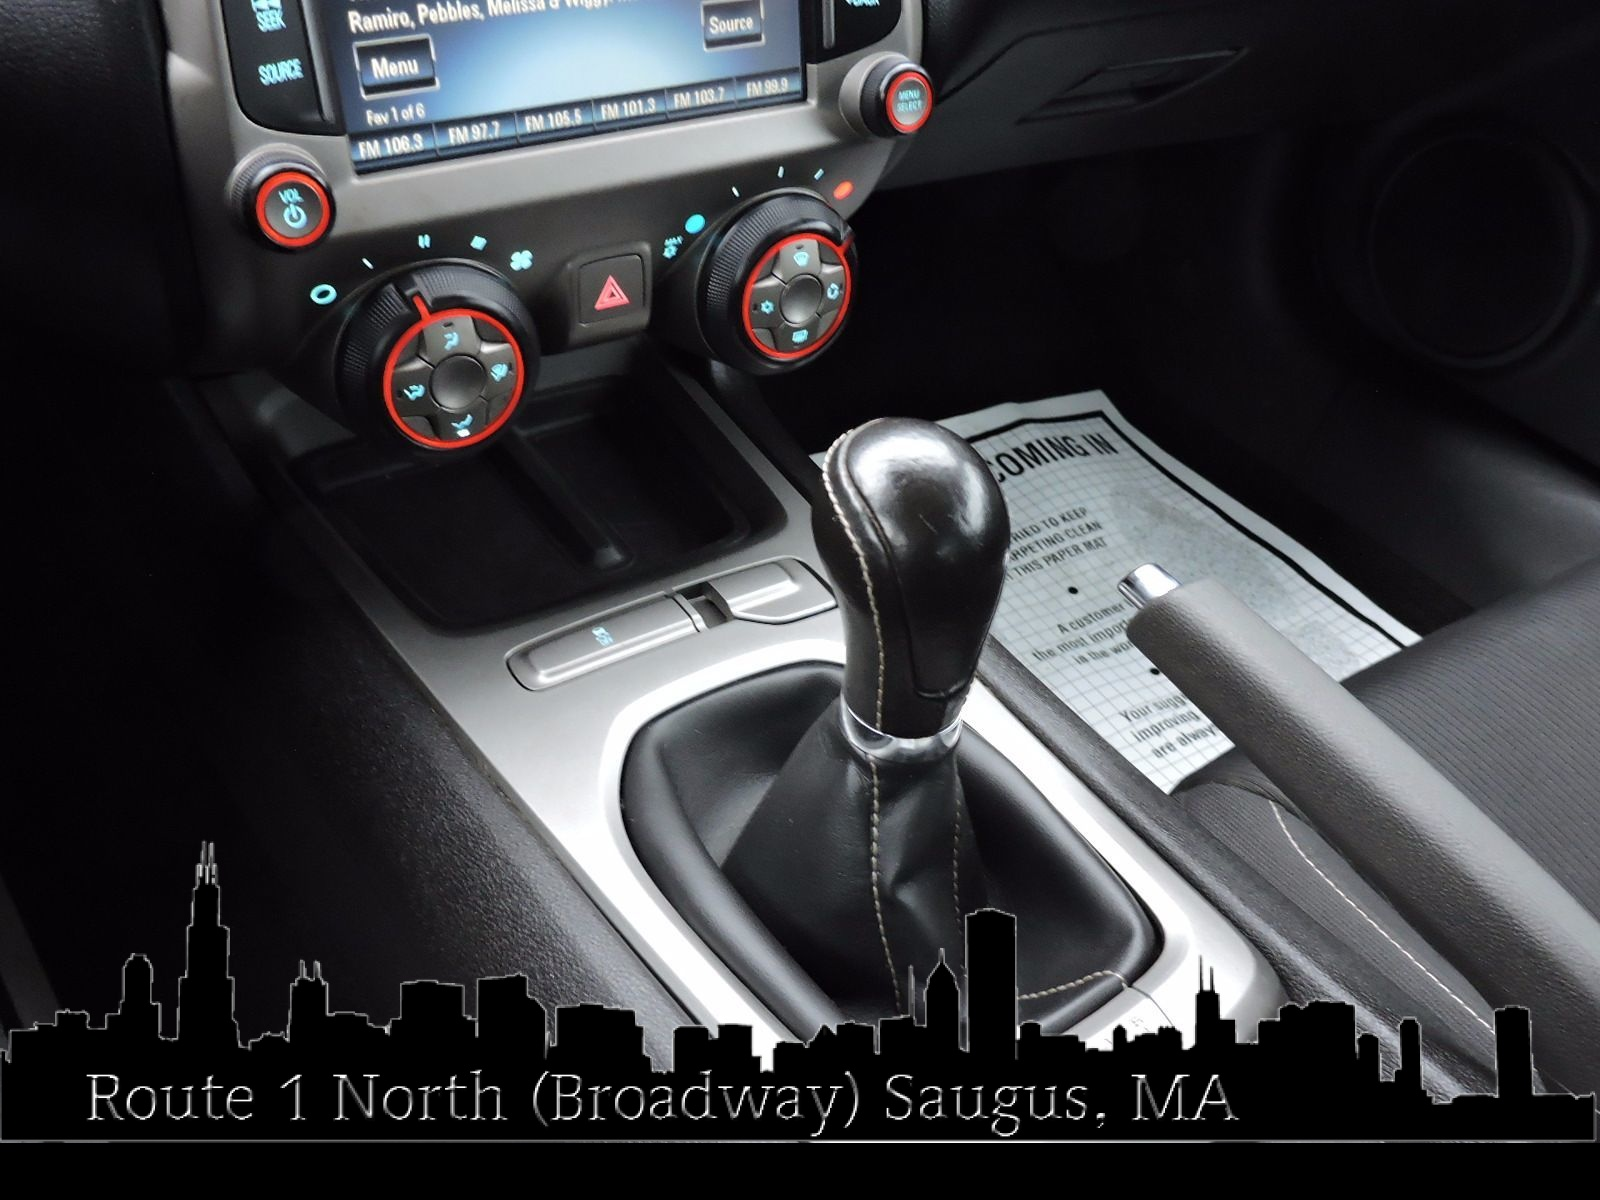 2013 Chevrolet Camaro - 6 Speed